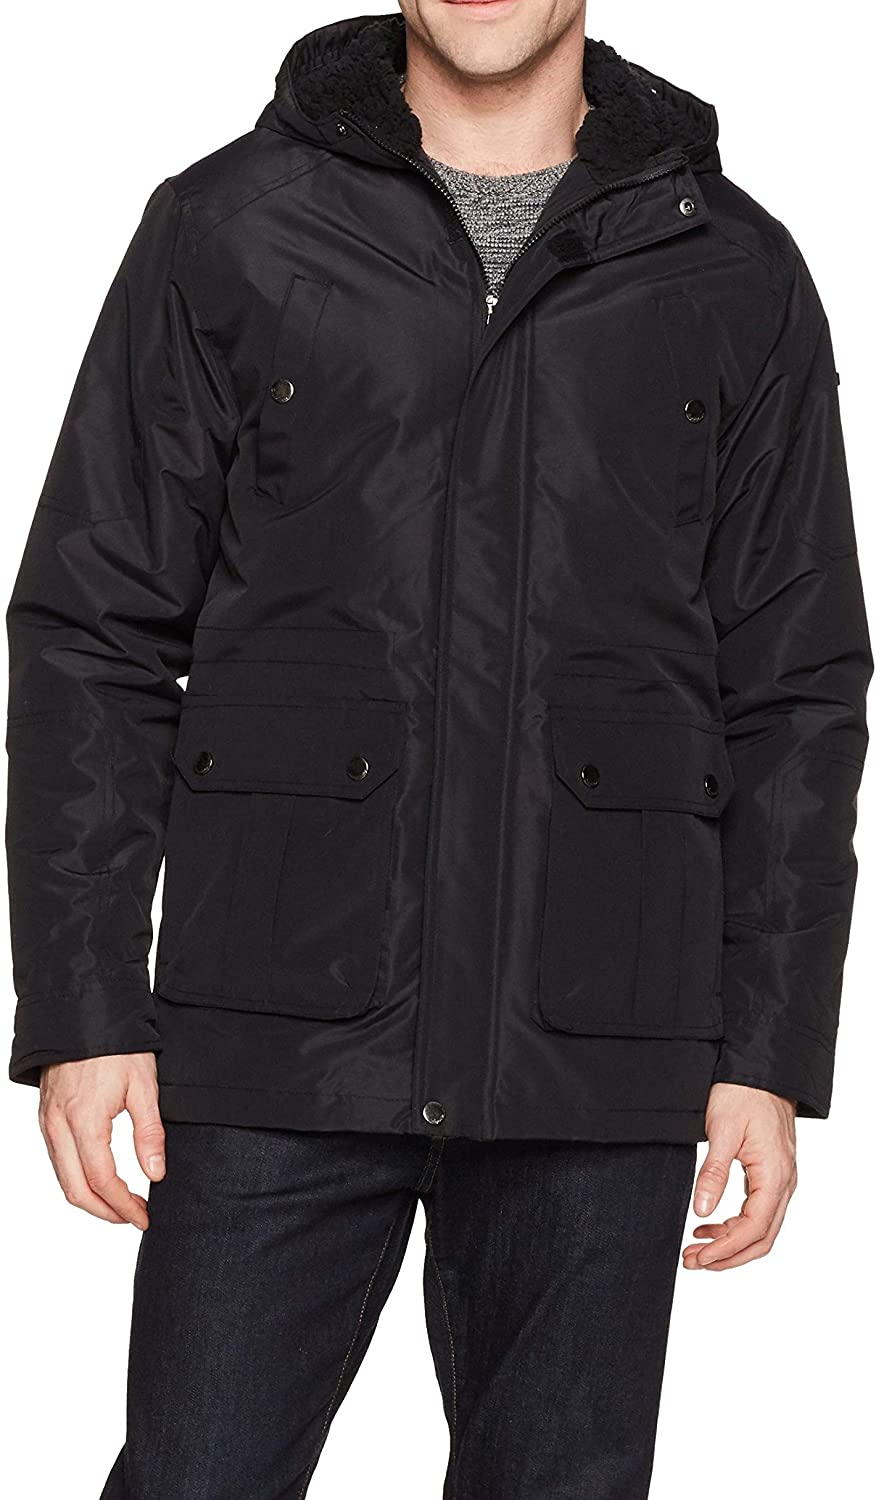 English Laundry Men's Midweight Parka with Faux Sherpa Lining